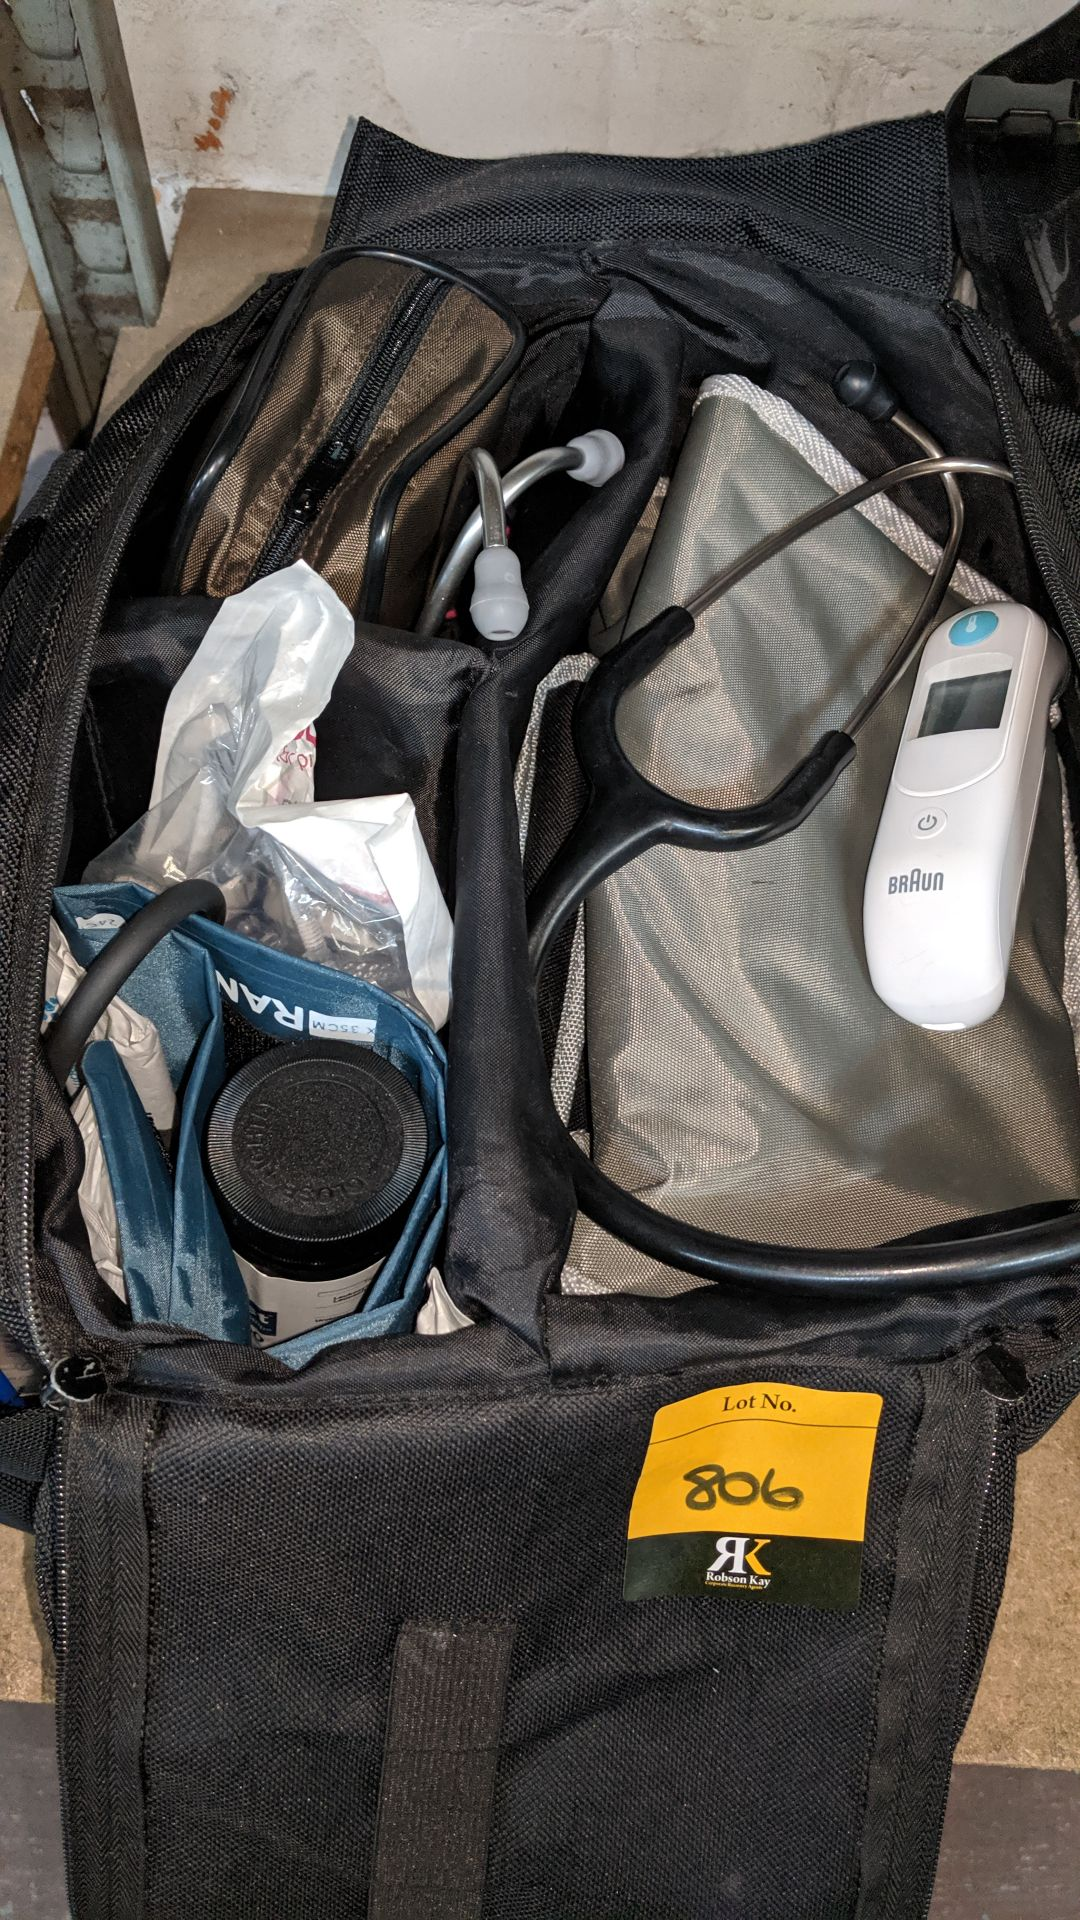 Lot 806 - 3 off medical bags & contents, each bag typically containing some or all of the following items -